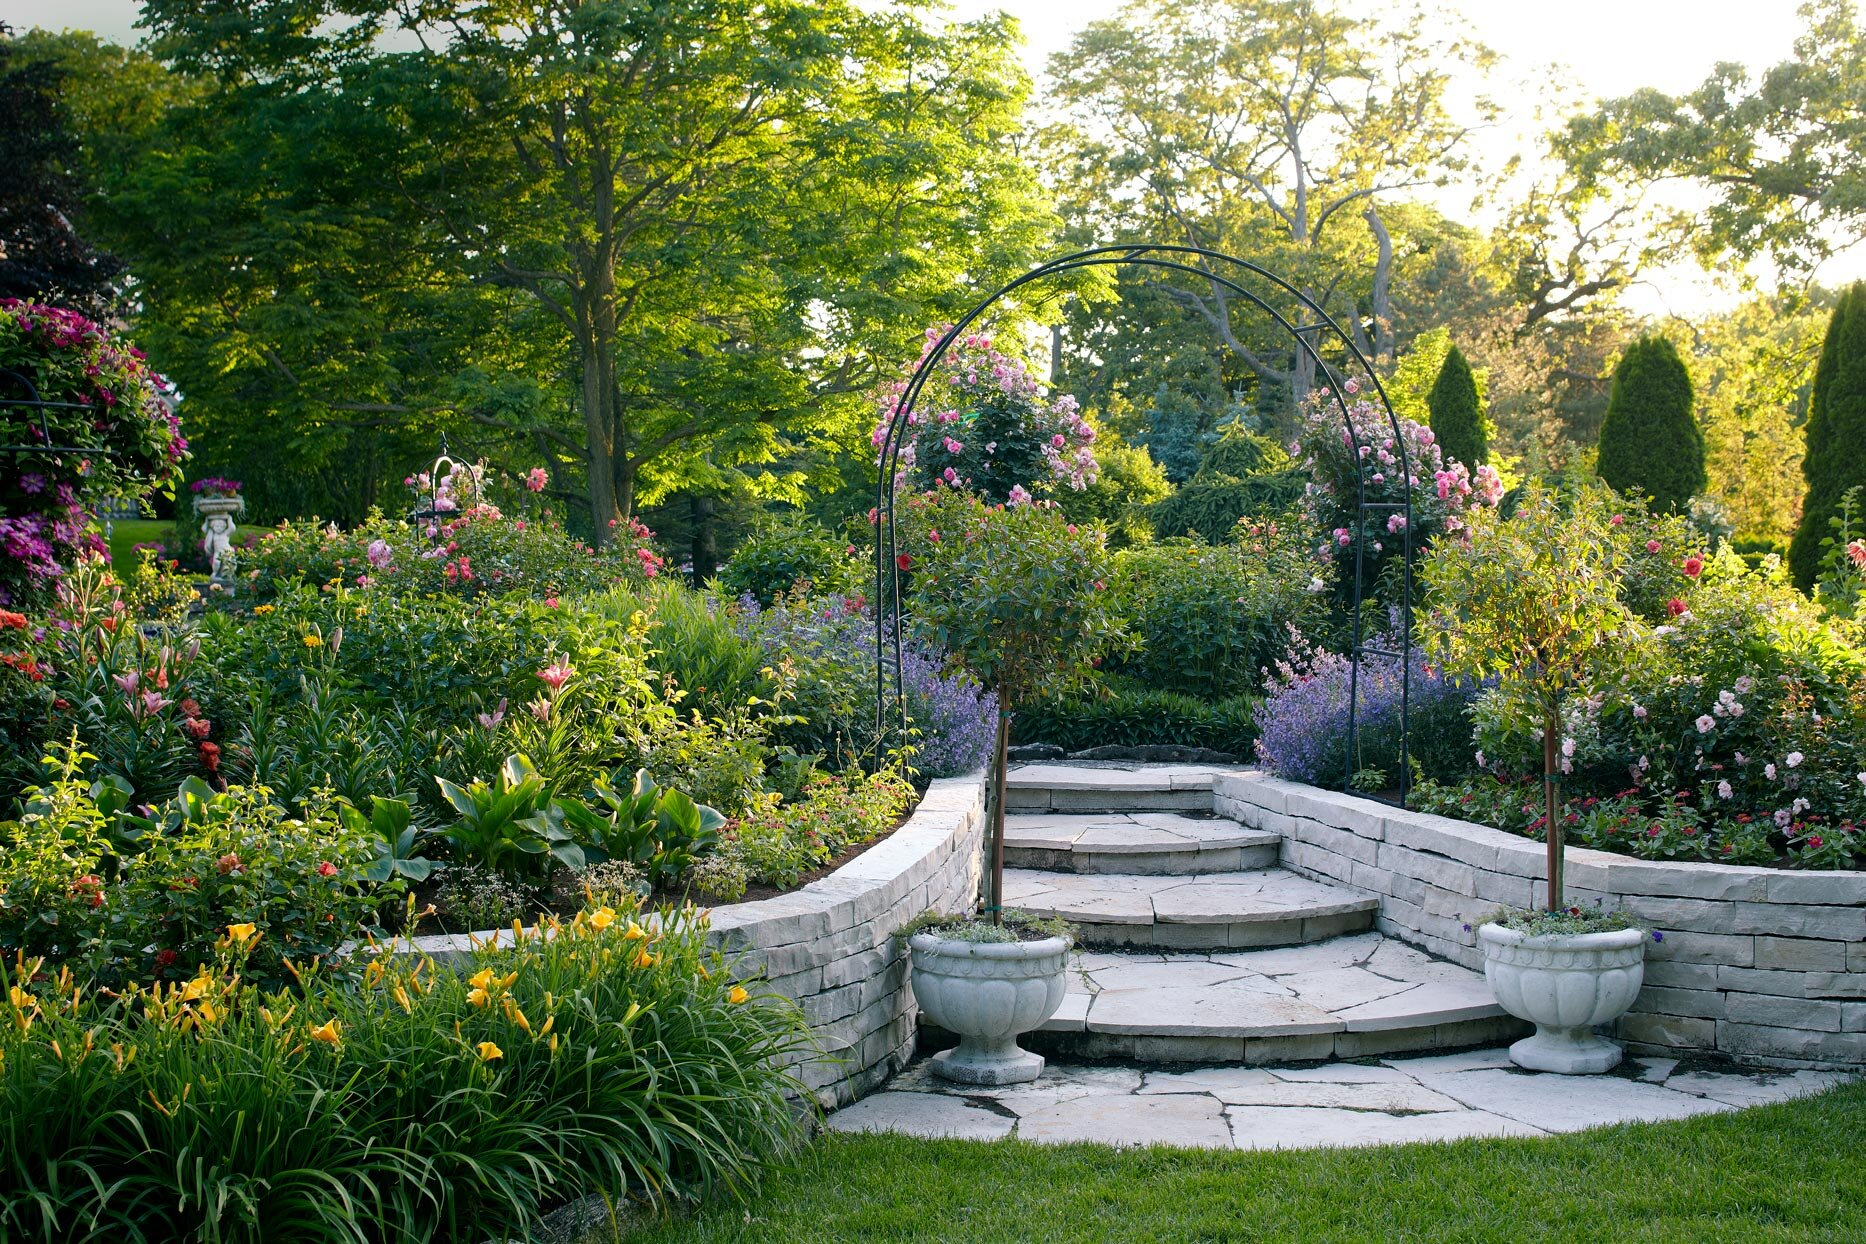 lush garden with stone steps